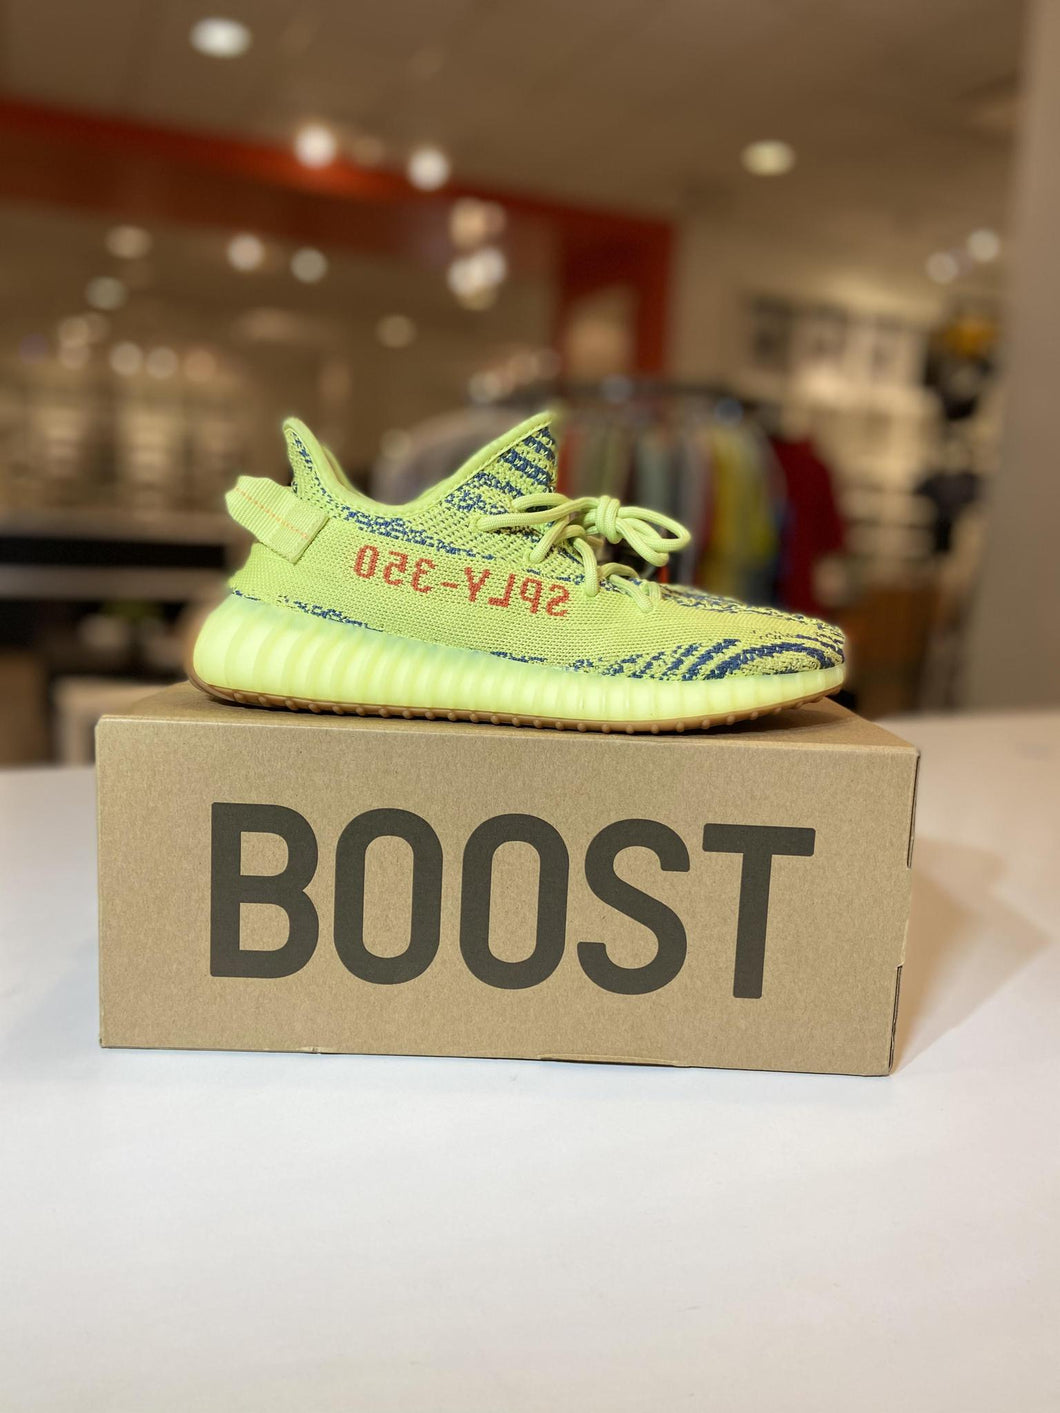 adidas Yeezy Boost 350 V2 Semi Frozen Yellow (Pre - Owned)